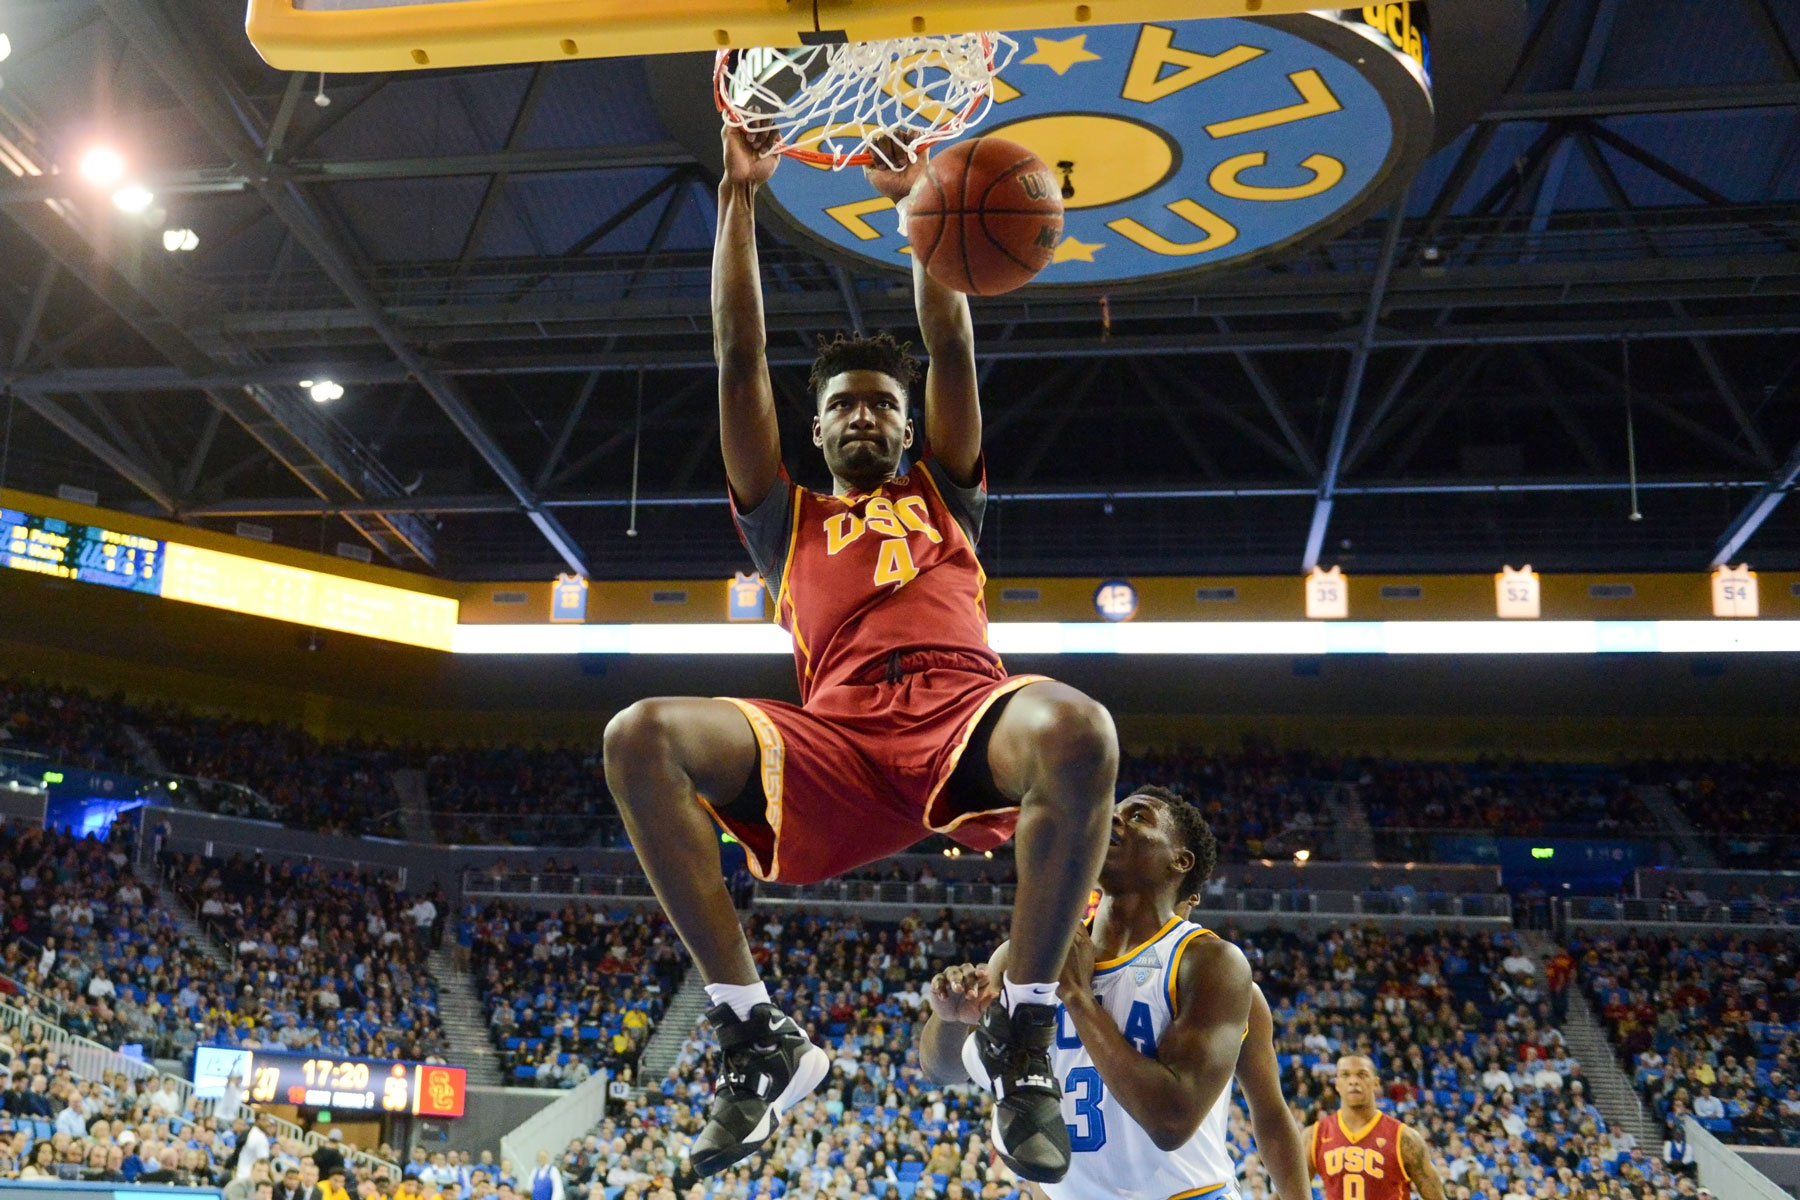 USC basketball player dunking